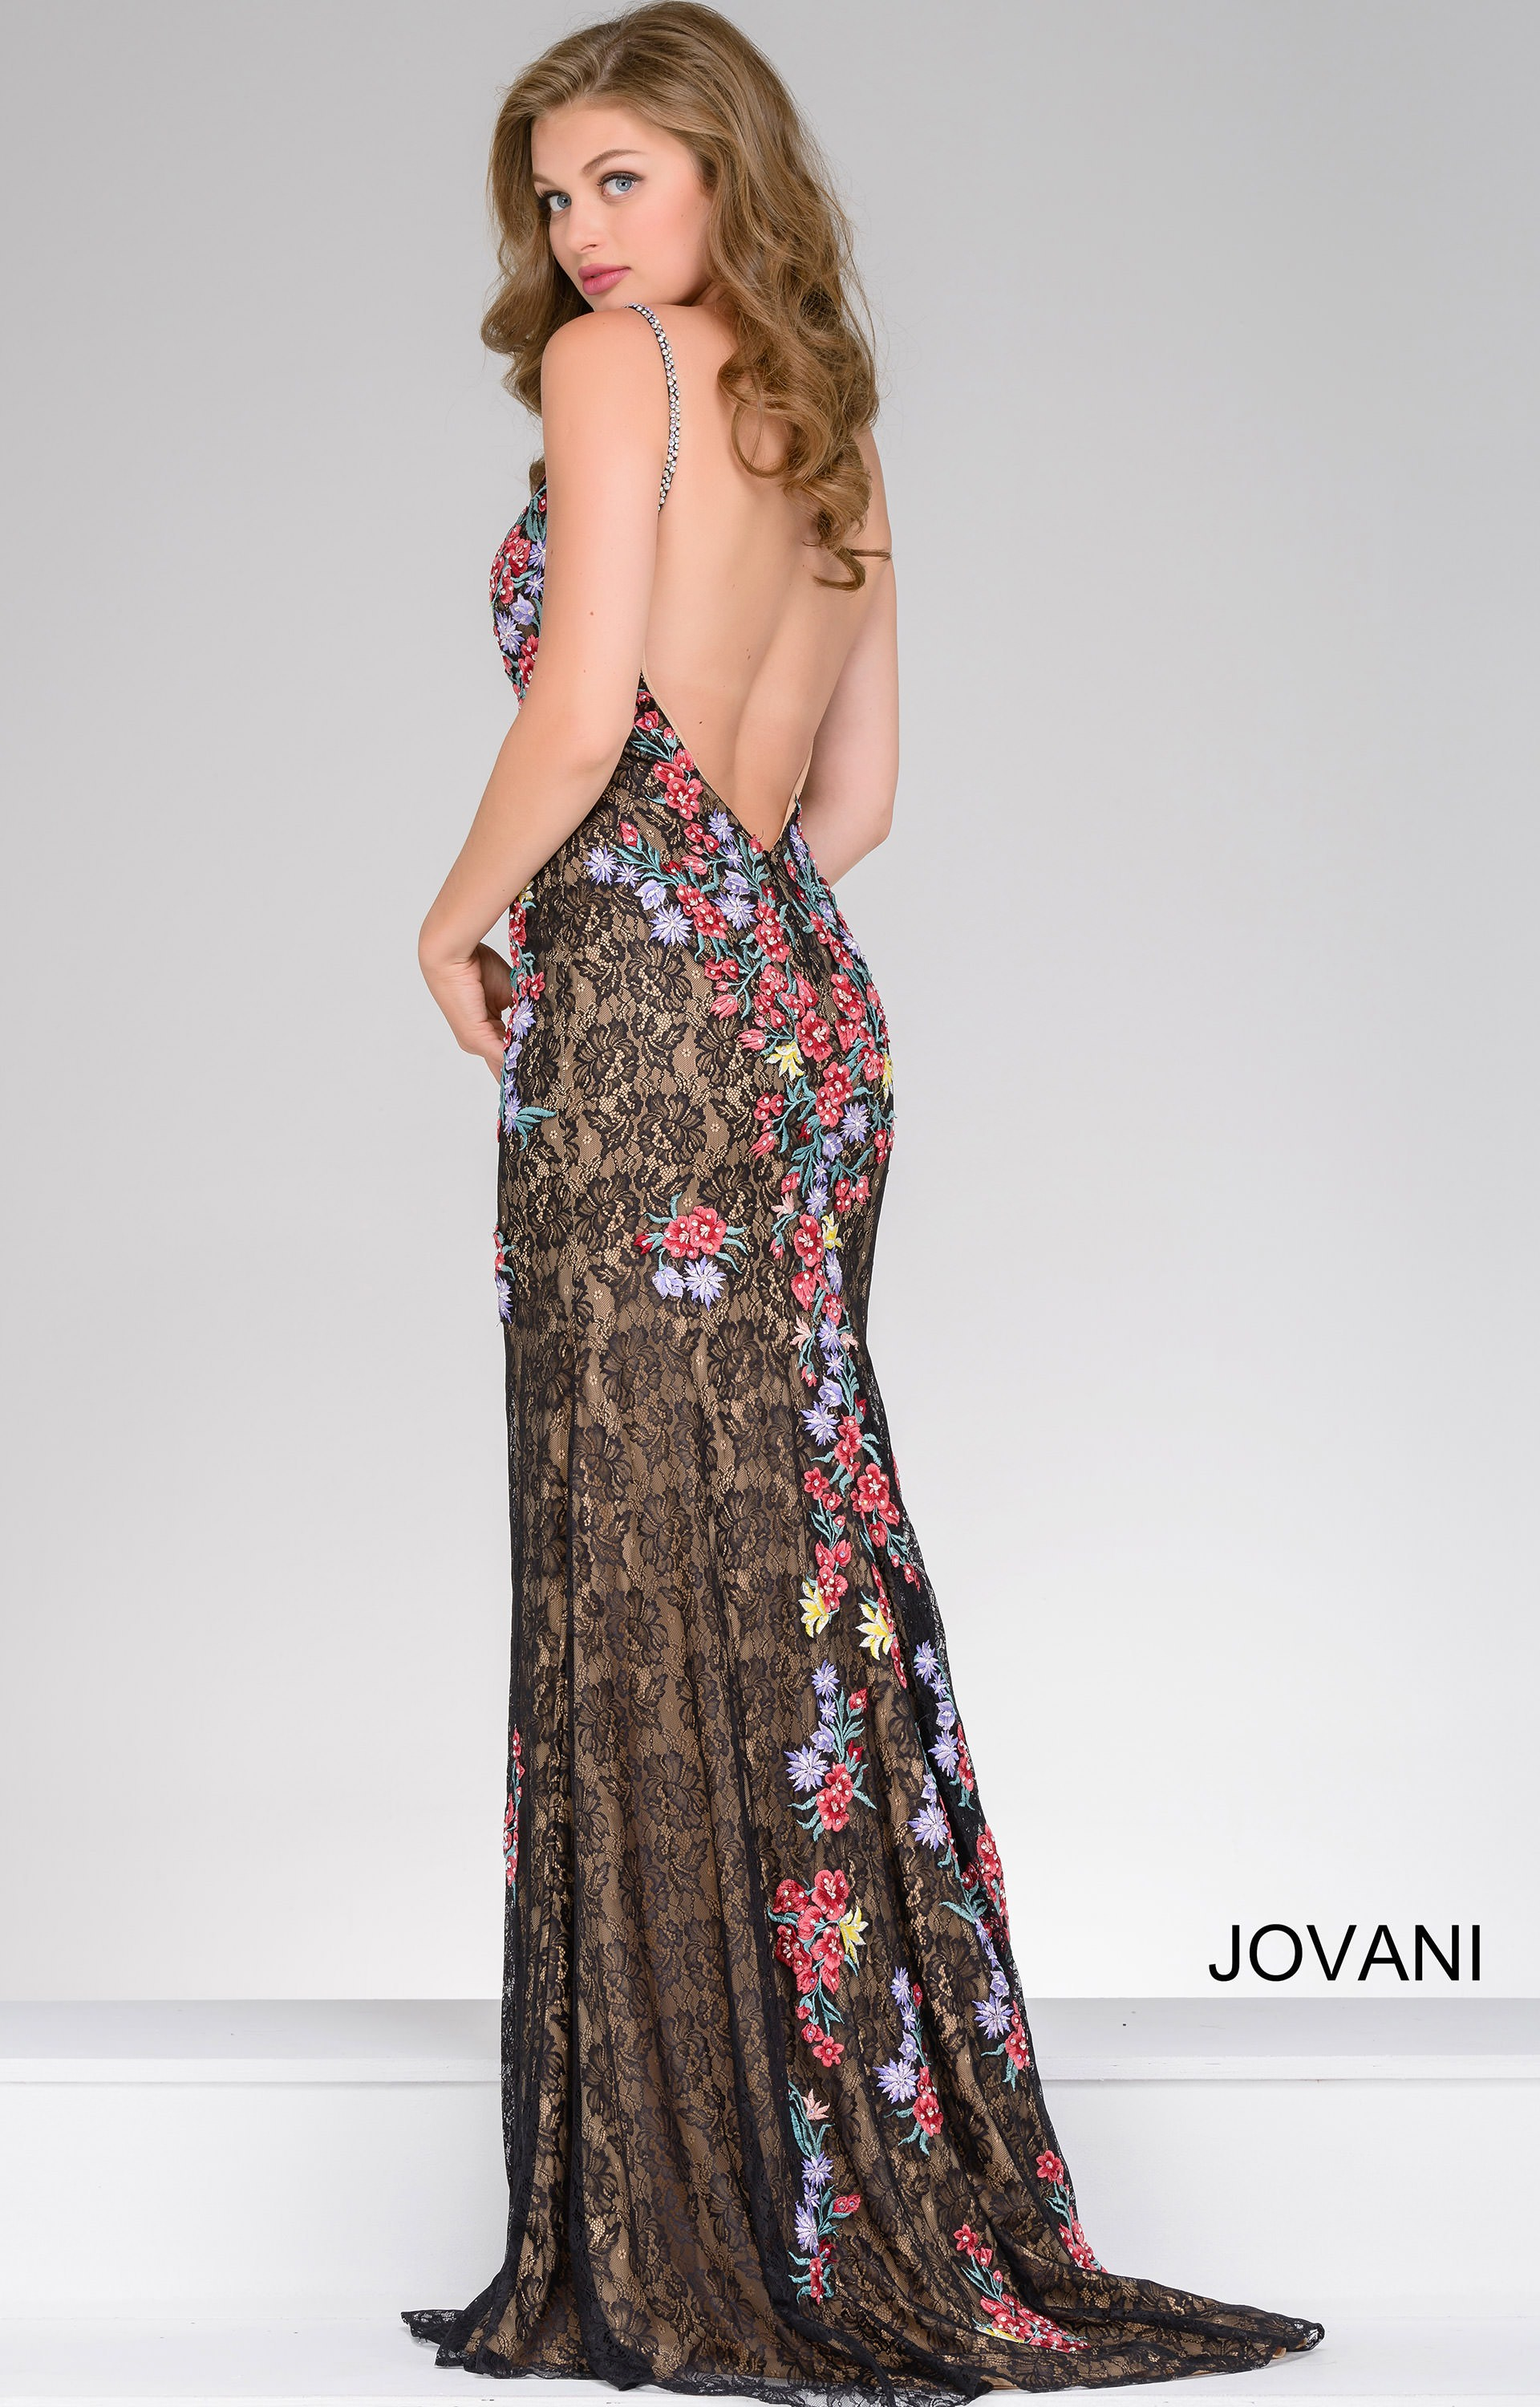 Jovani 48893  Embroidered Floral and Lace Dress Prom Dress